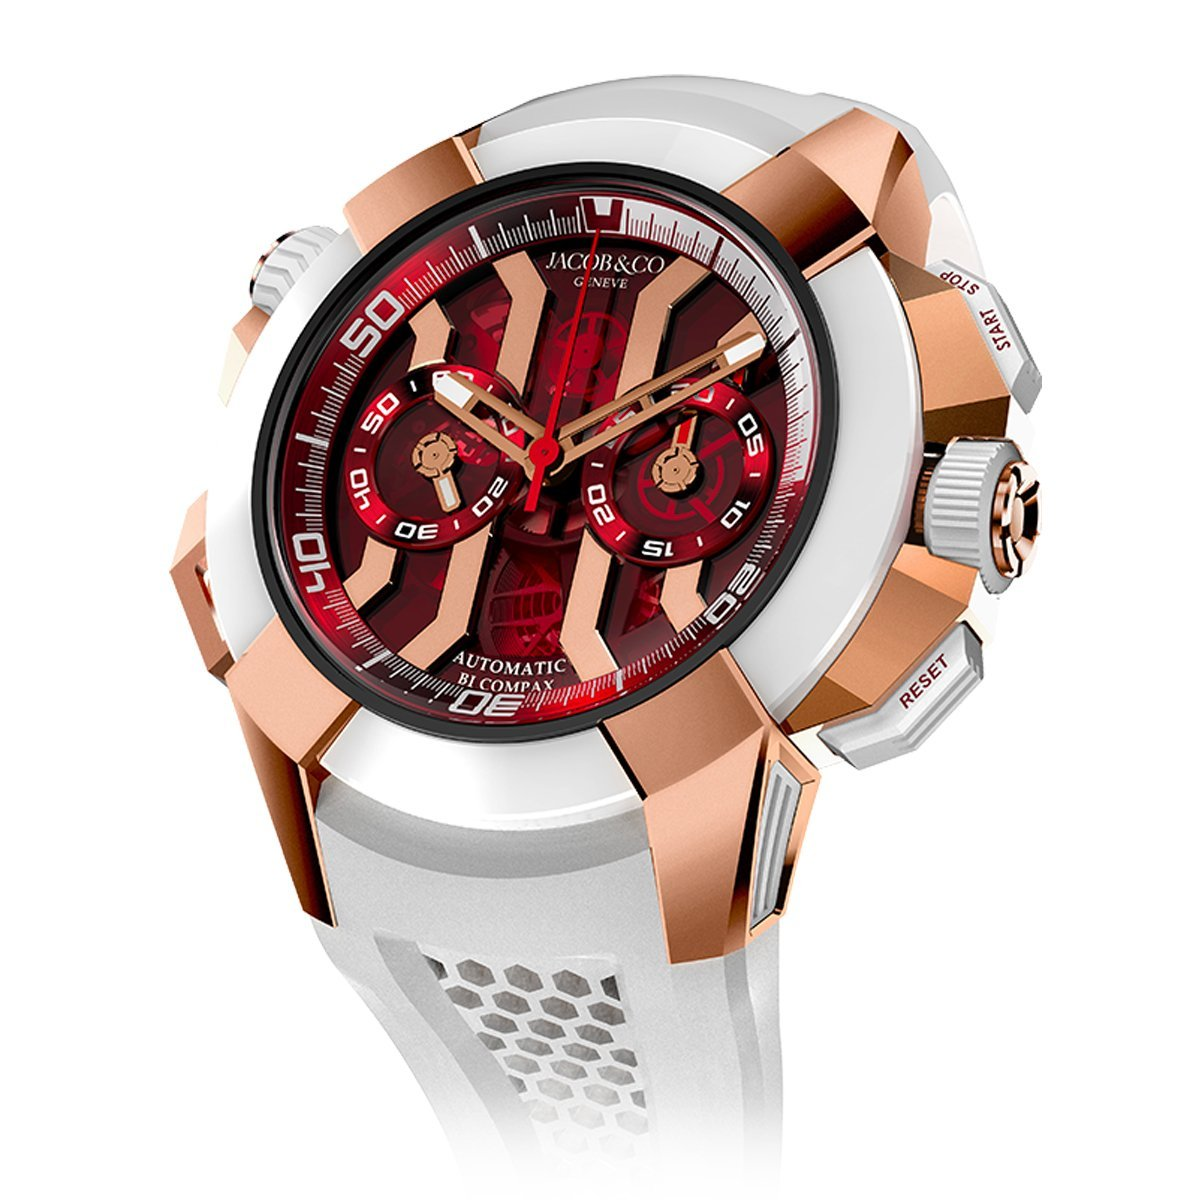 Jacob & Co. Epic X Chronograph Red - Watches & Crystals